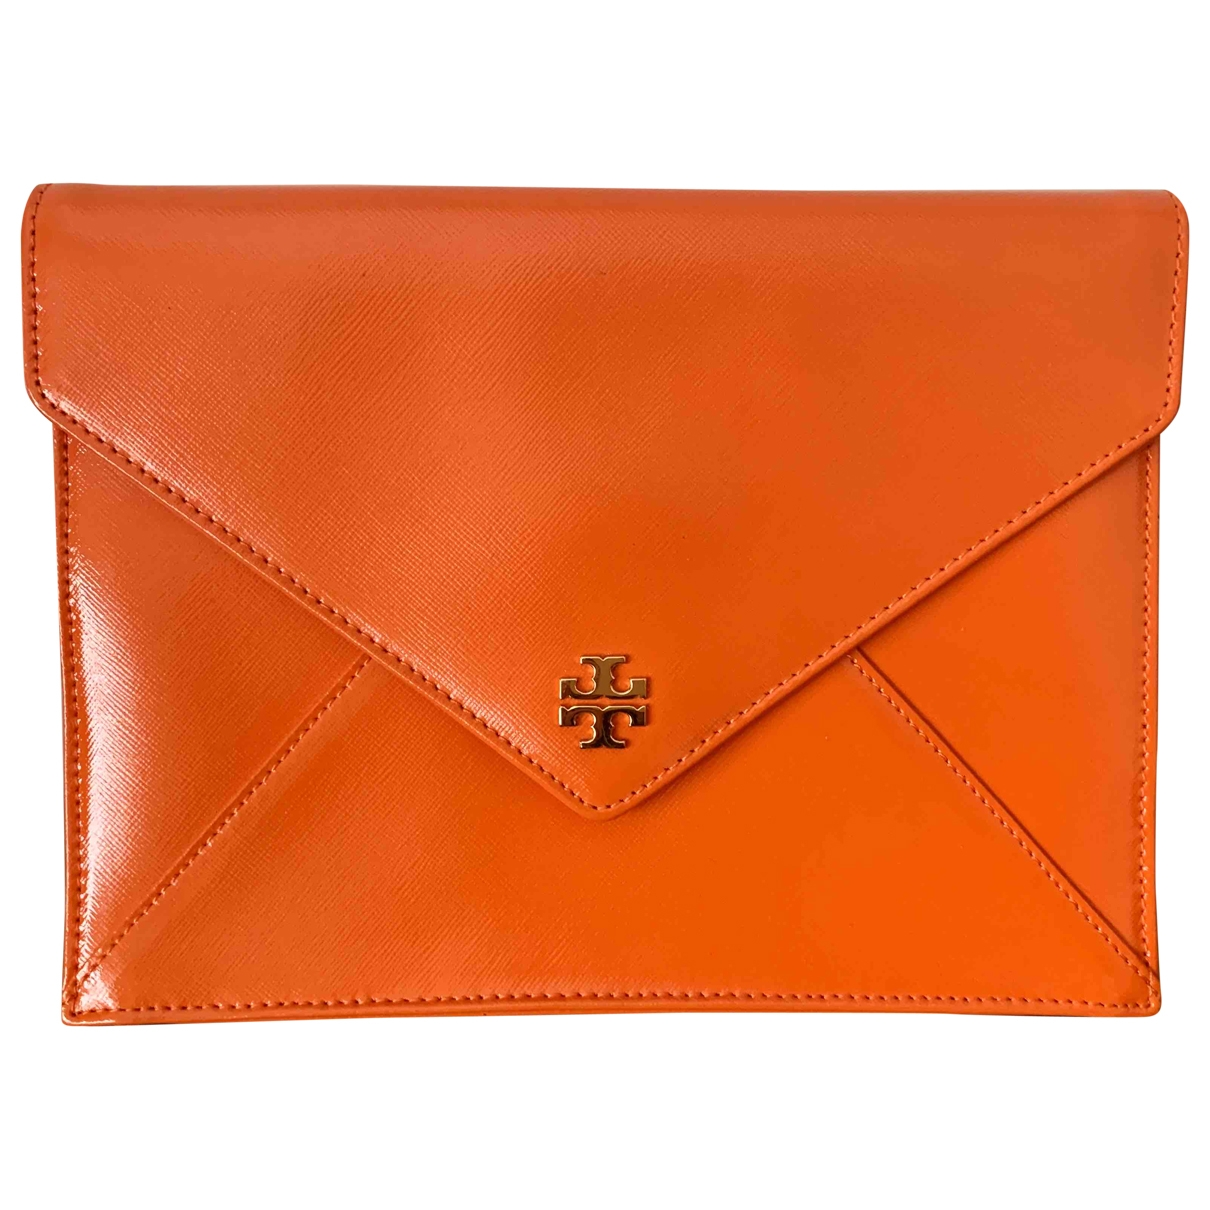 Tory Burch \N Clutch in  Orange Leder